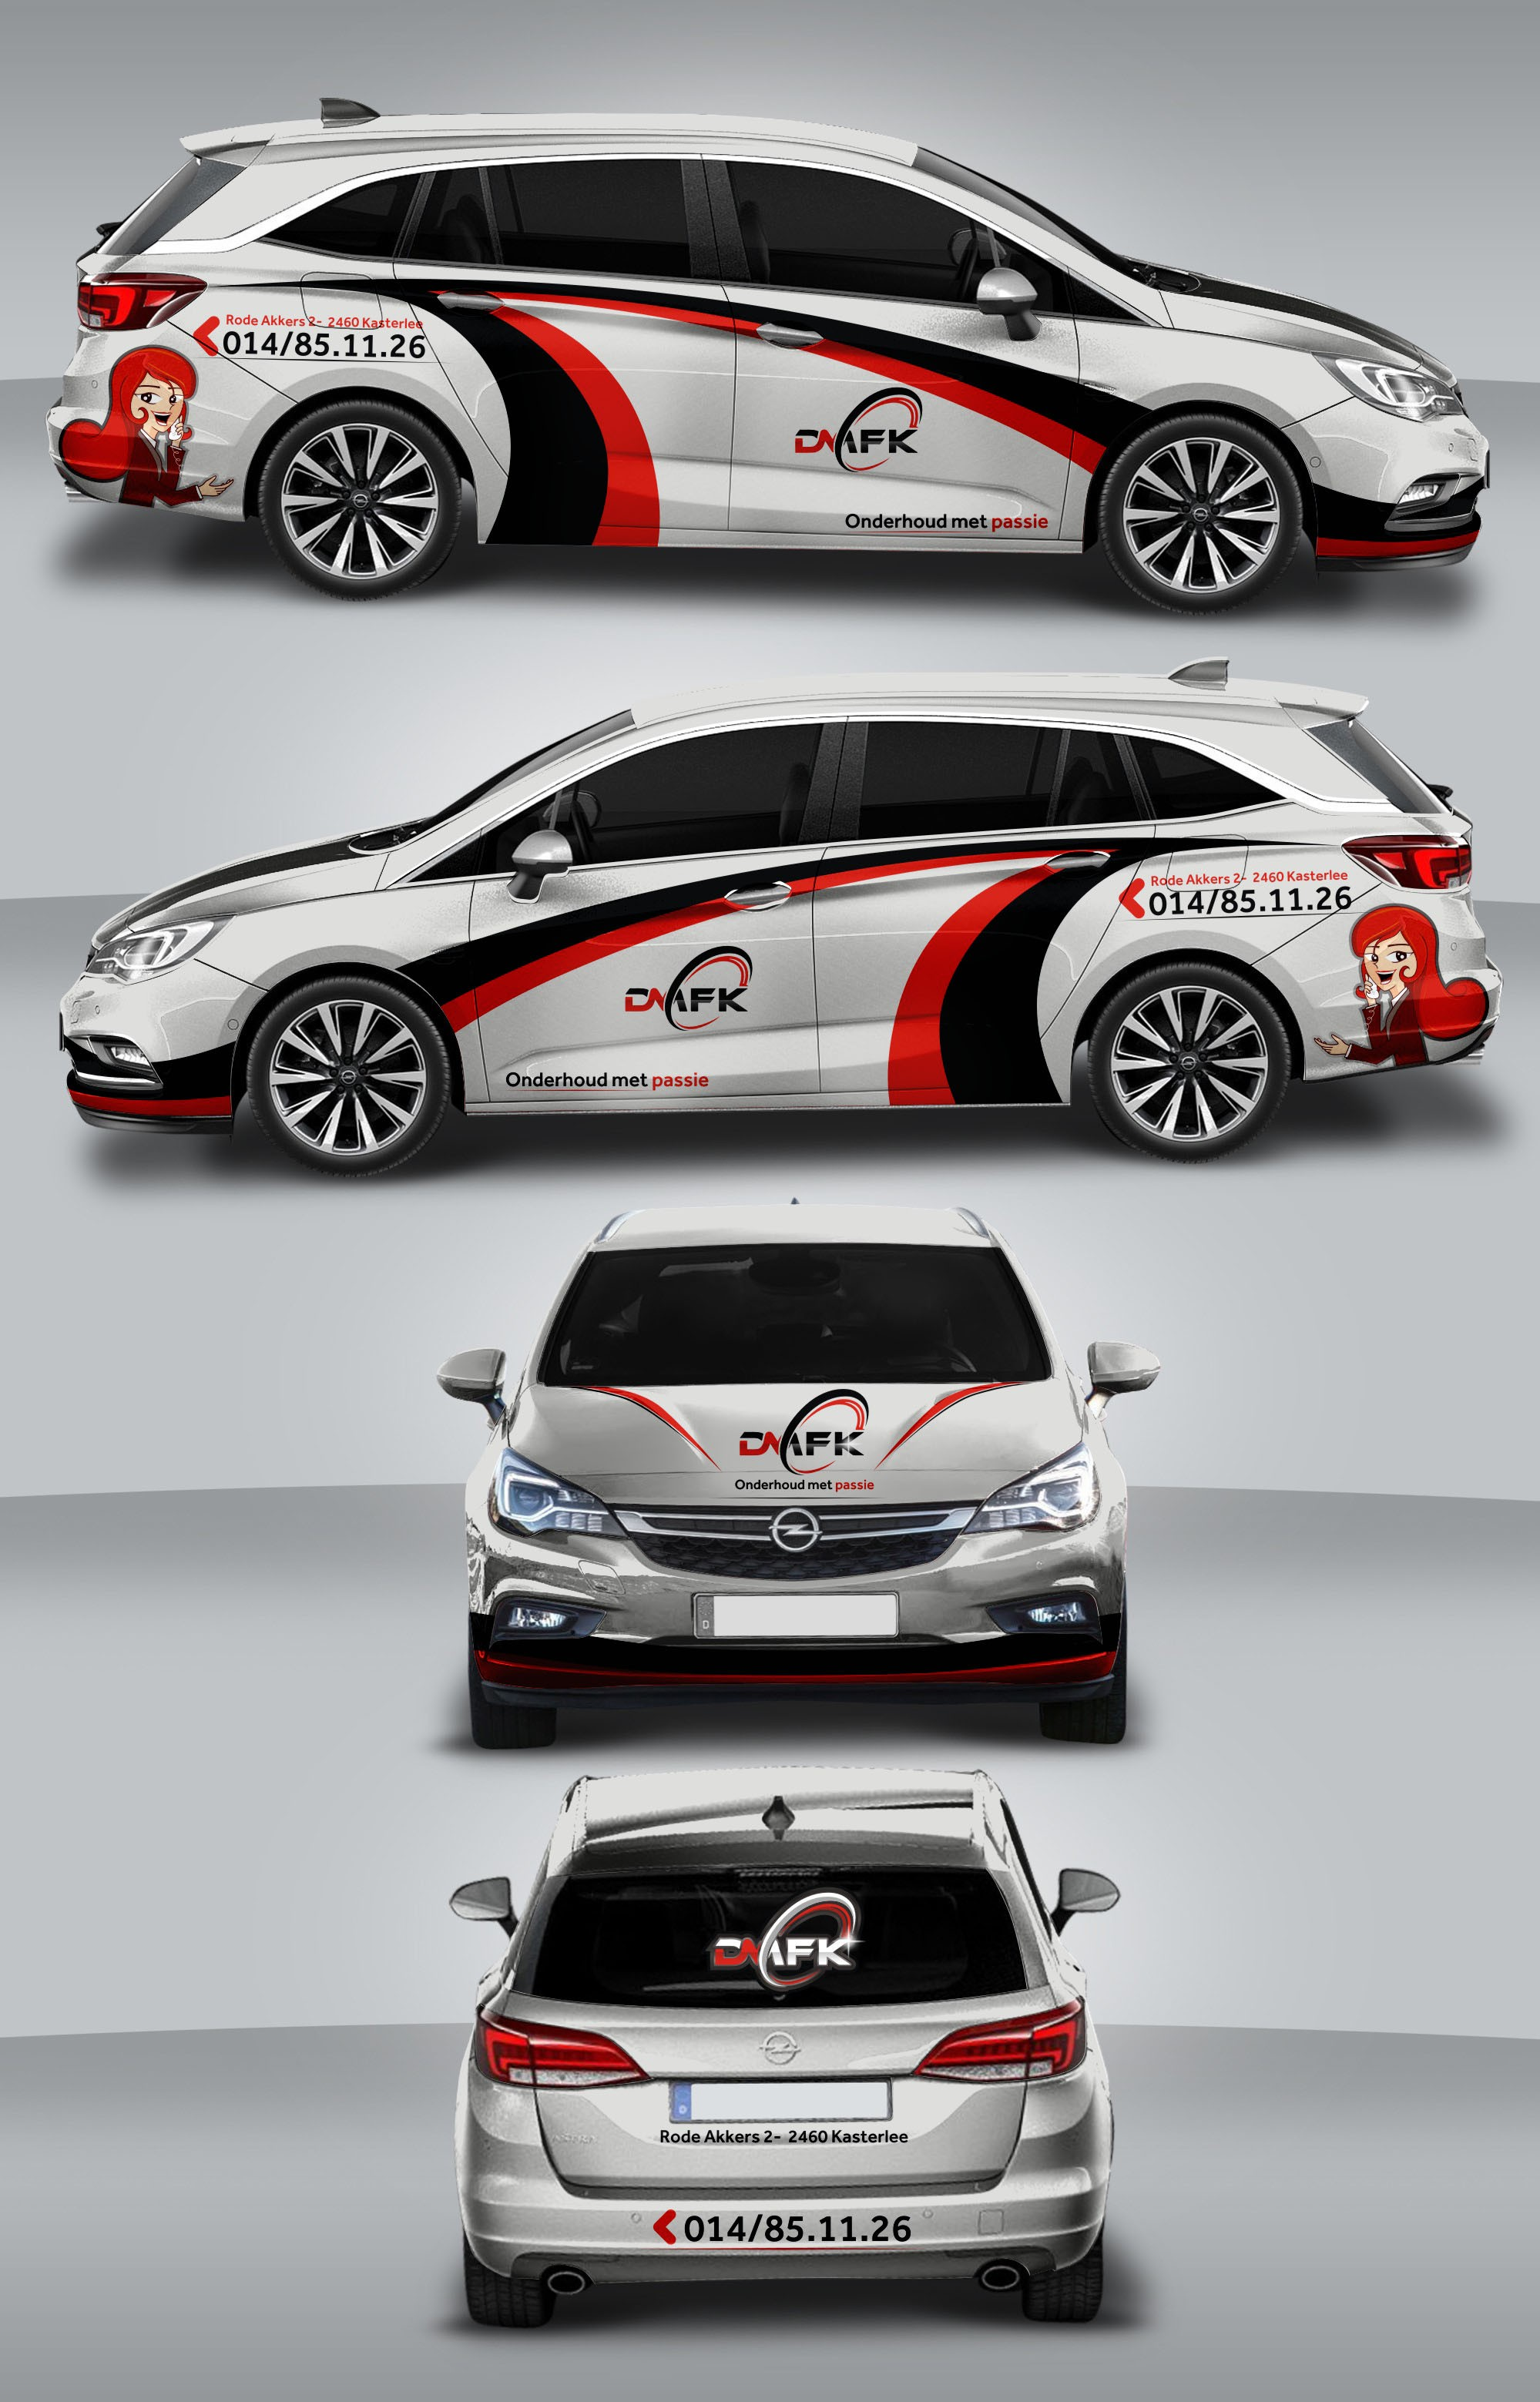 A wonderfull and creative car wrapping contest